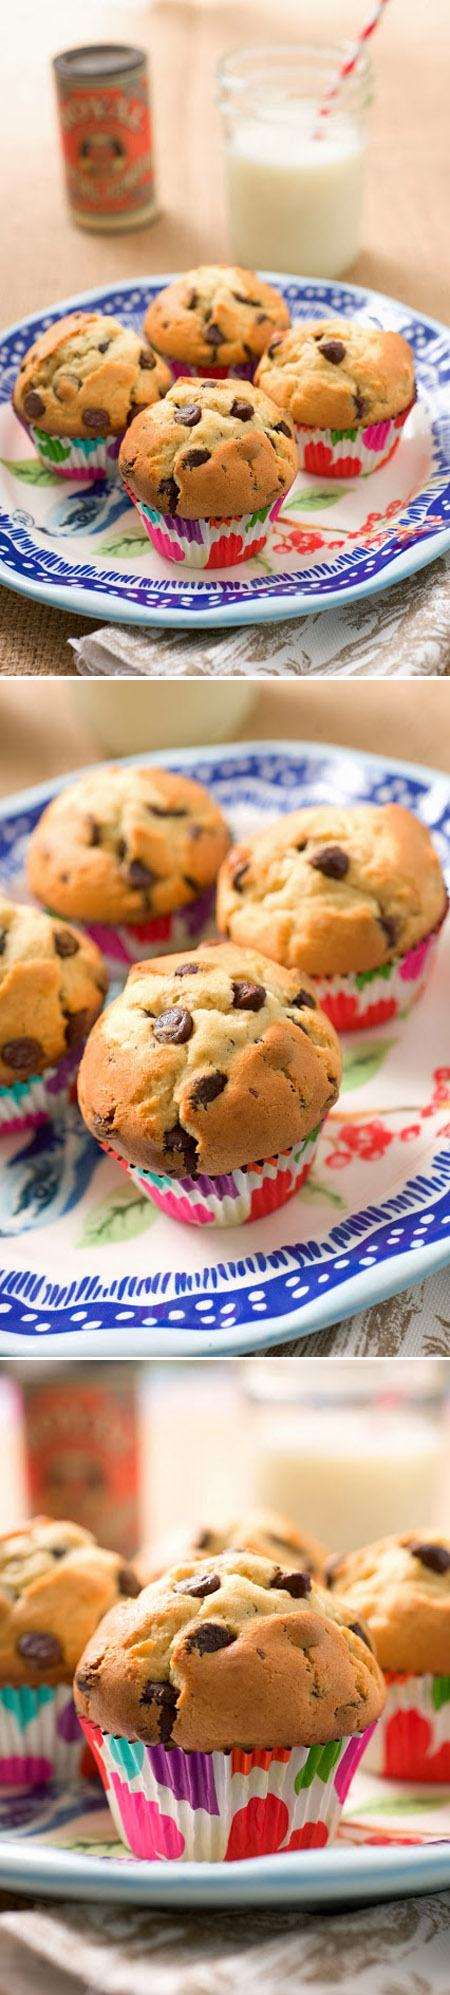 muffins-chips-chocolate-pecados-reposteria-2